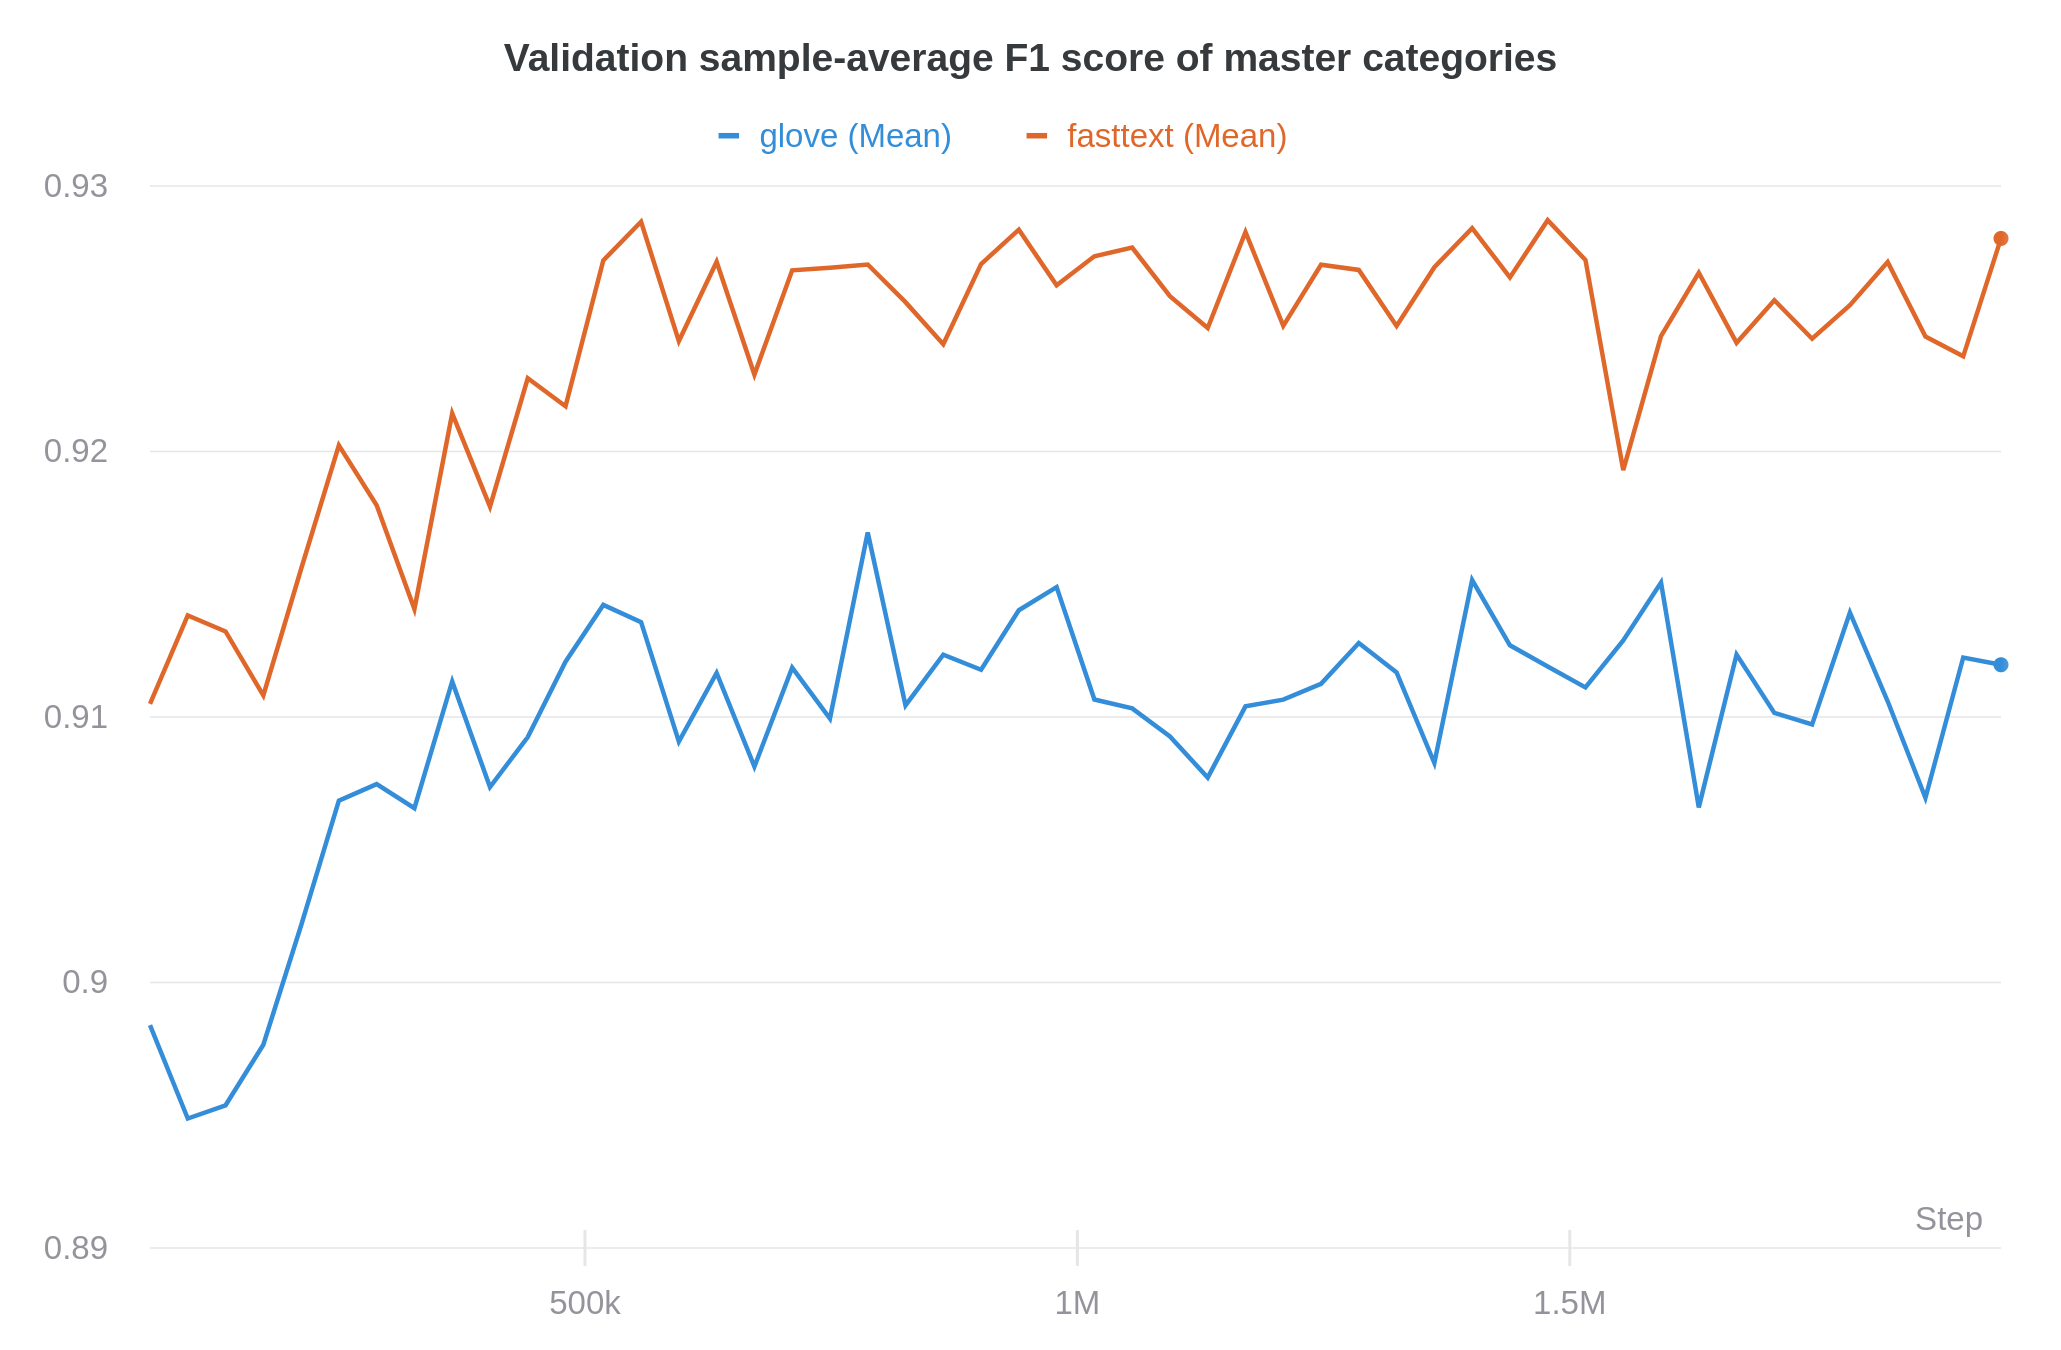 Comparison of model performance when trained on the homemade FastText vectors and the pre-trained GloVe vectors. FastText wins massively.